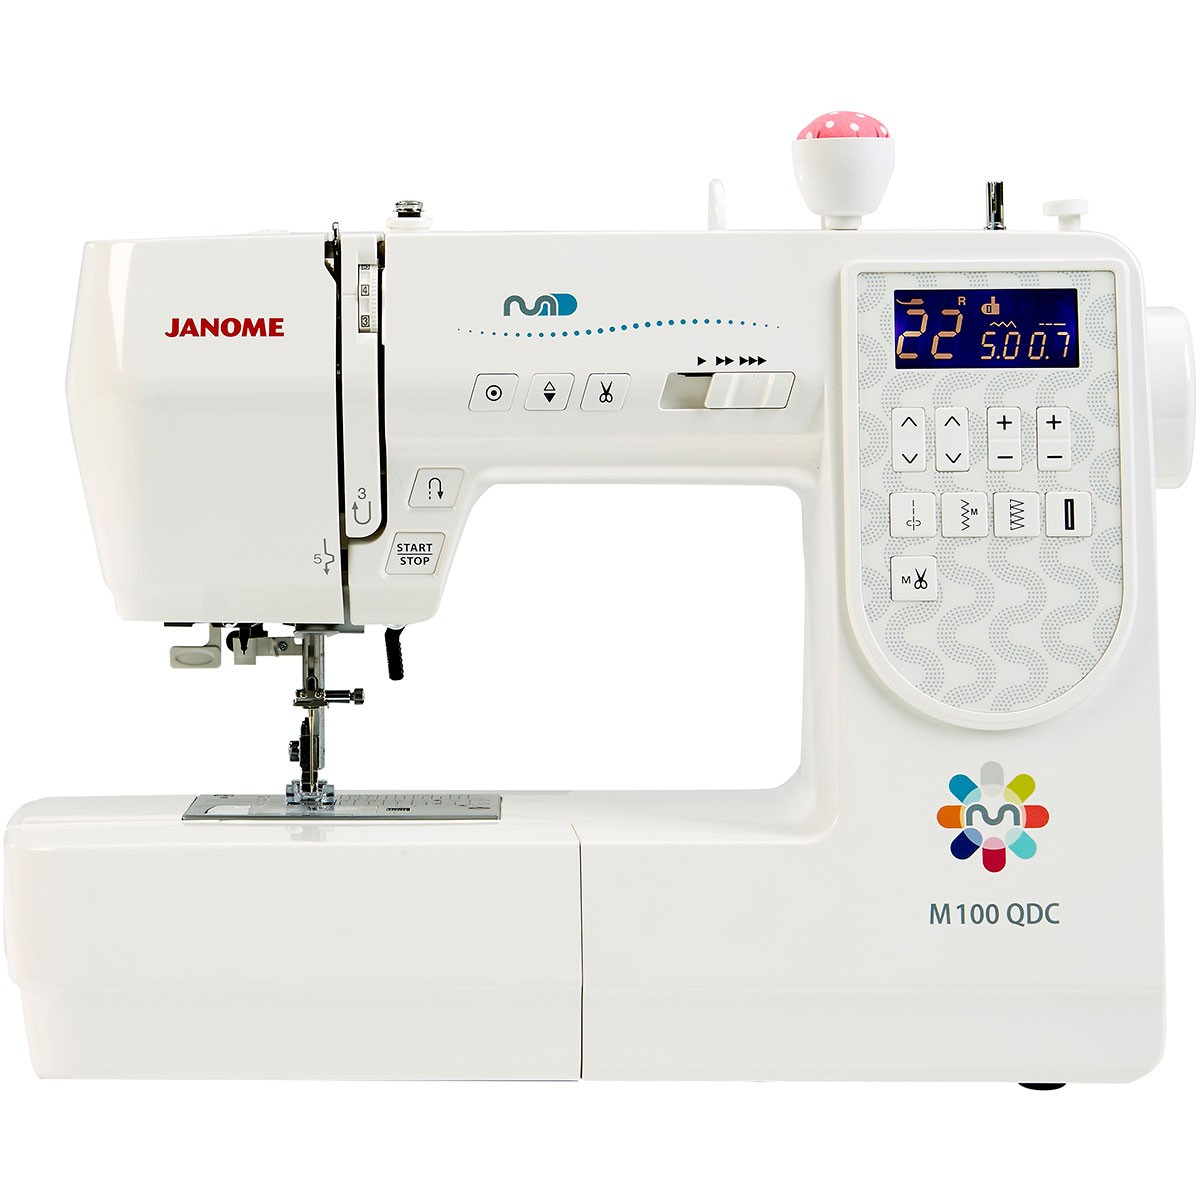 janome M100_qdc - Franklins Group